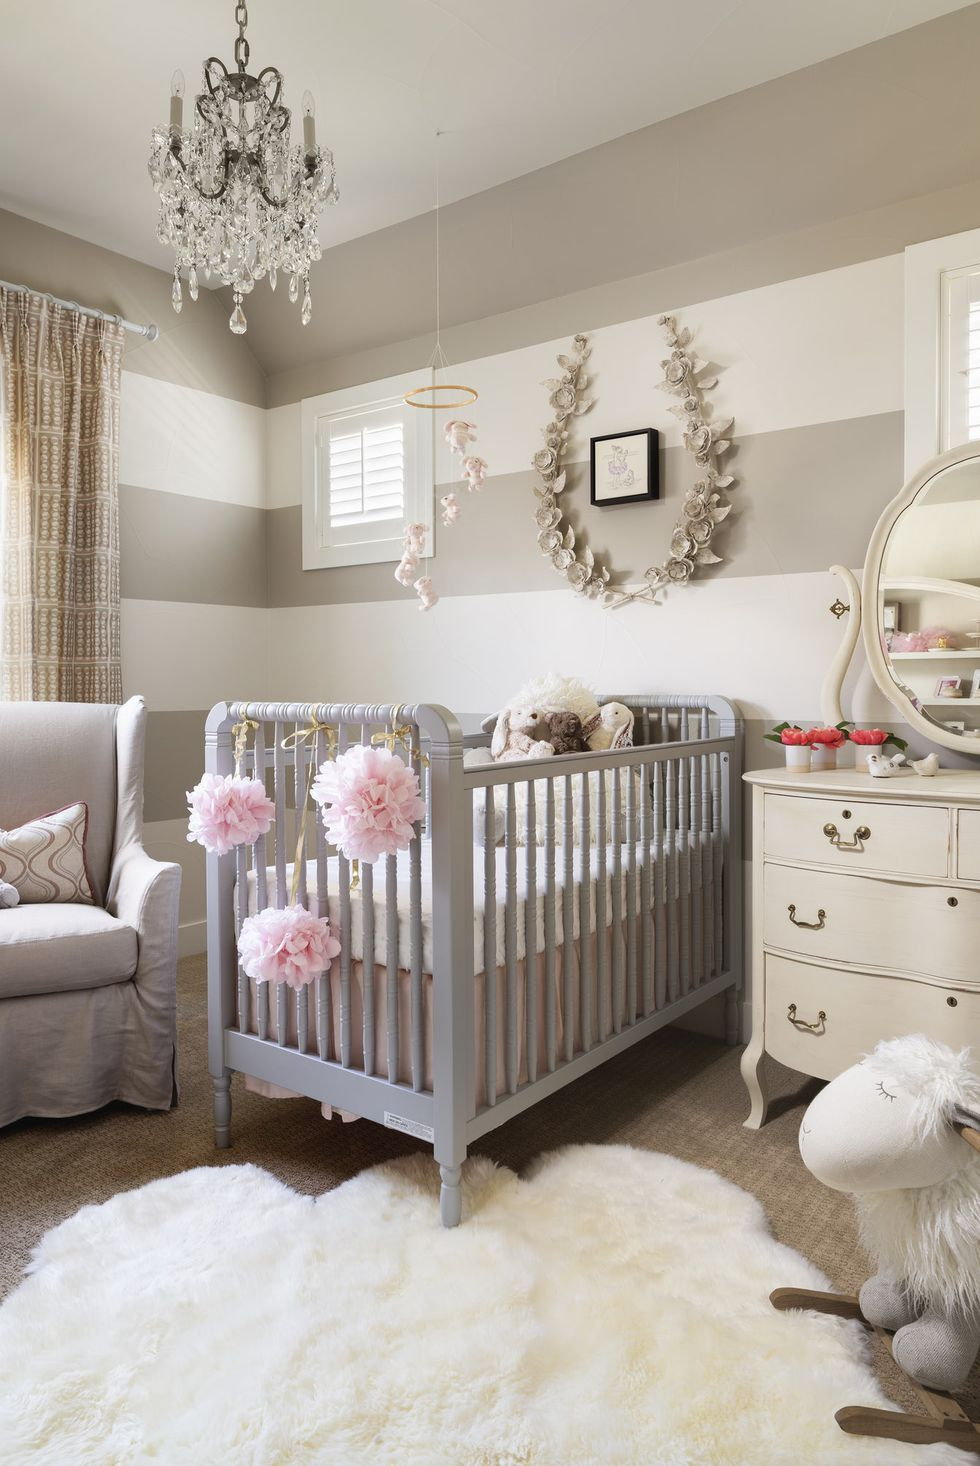 Stylish Baby Rooms Even Adults Would Adore Chic baby